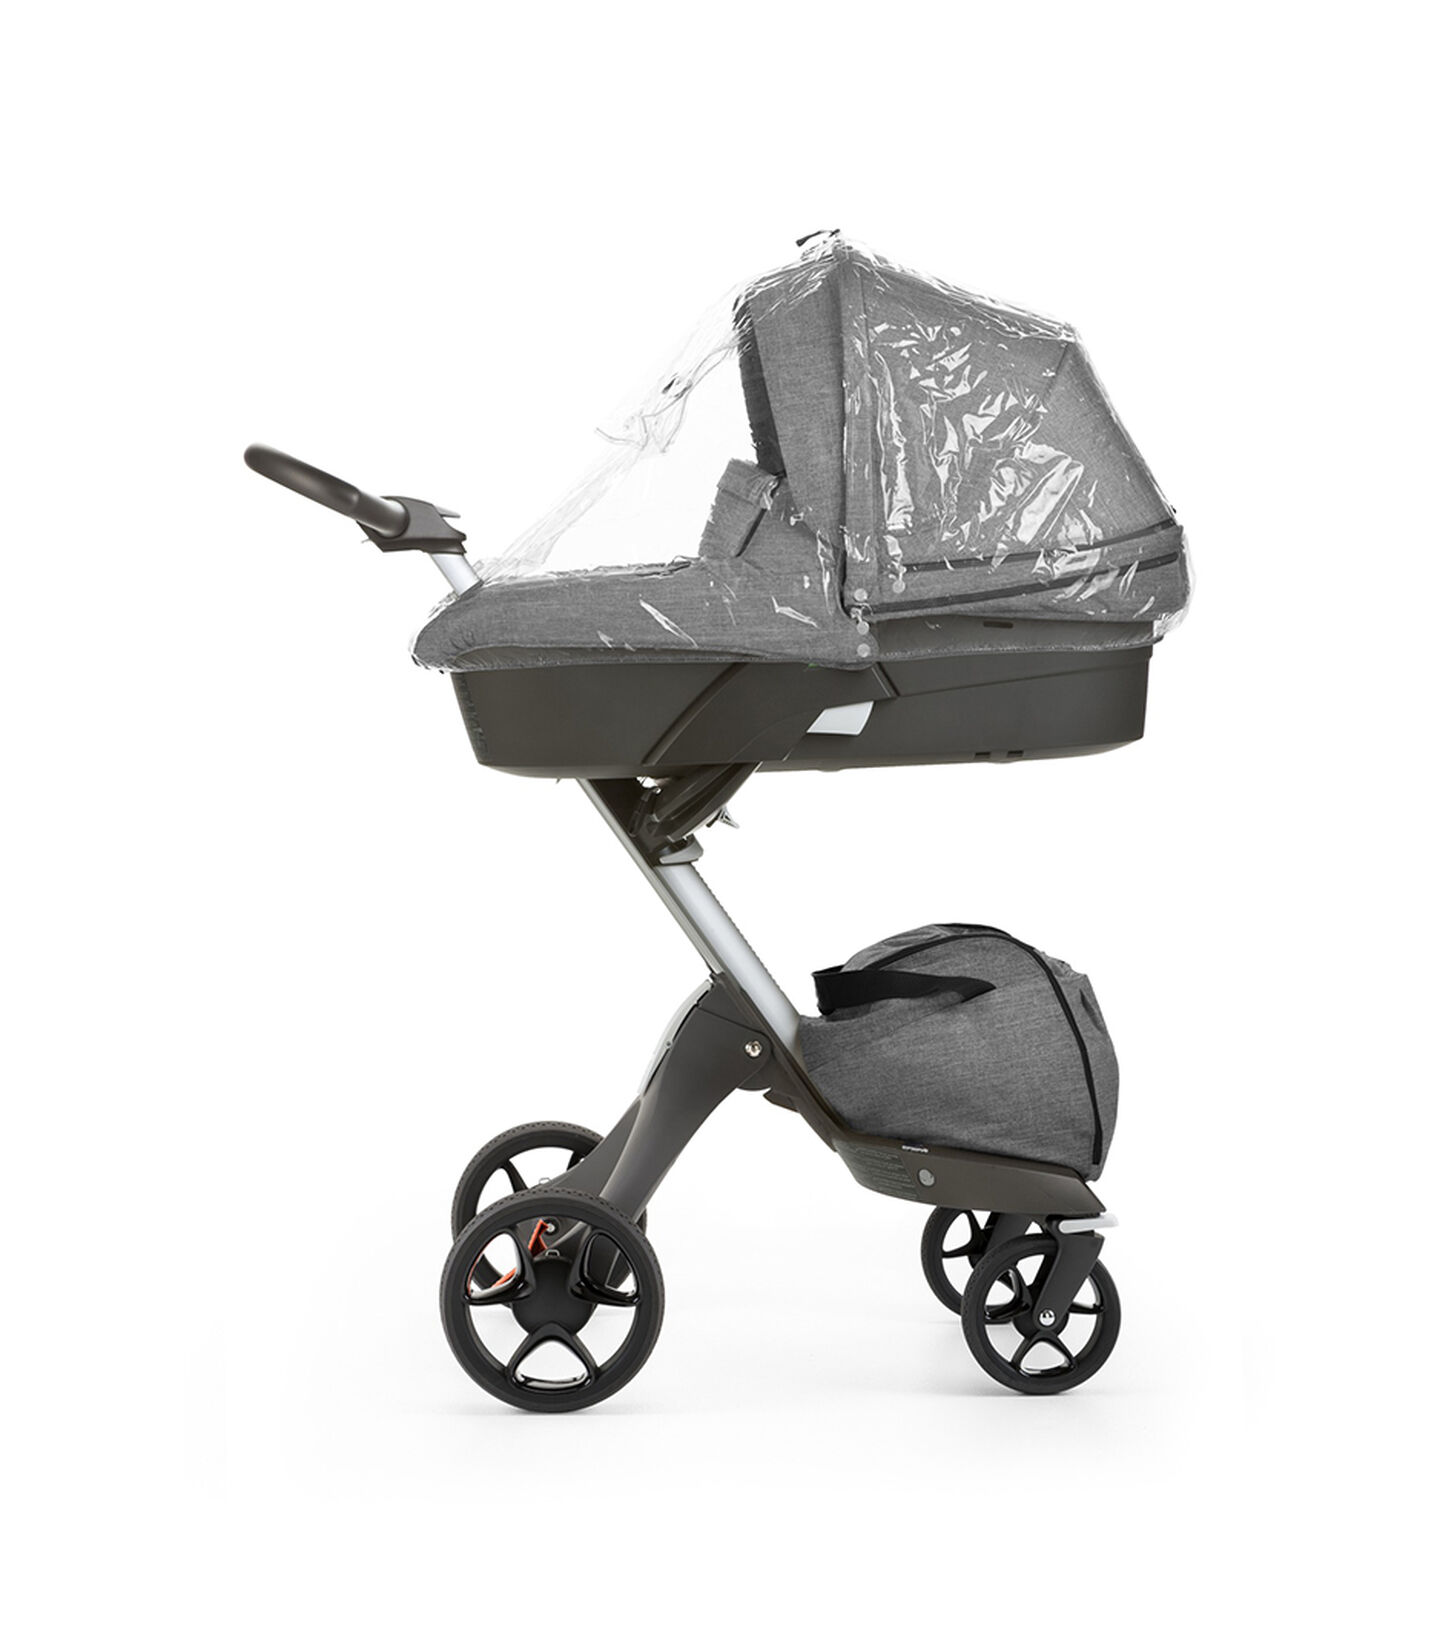 Stokke® Xplroy® with Carry Cot Black Melange and rain cover. New wheels 2016.